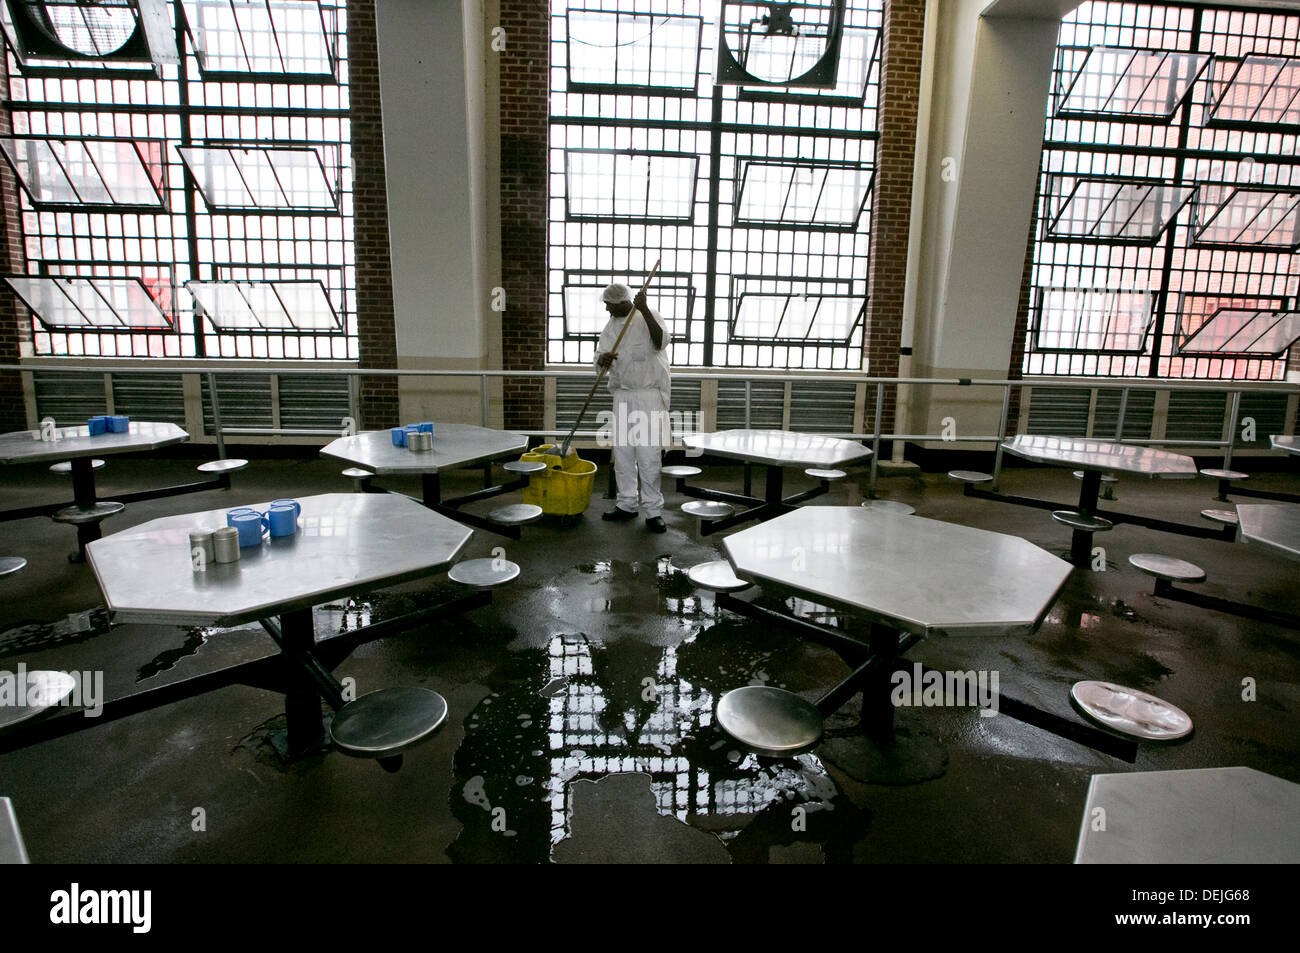 Male inmate works mopping up the floor in cafeteria dinning area inside maximum security prison near Houston, Texas - Stock Image